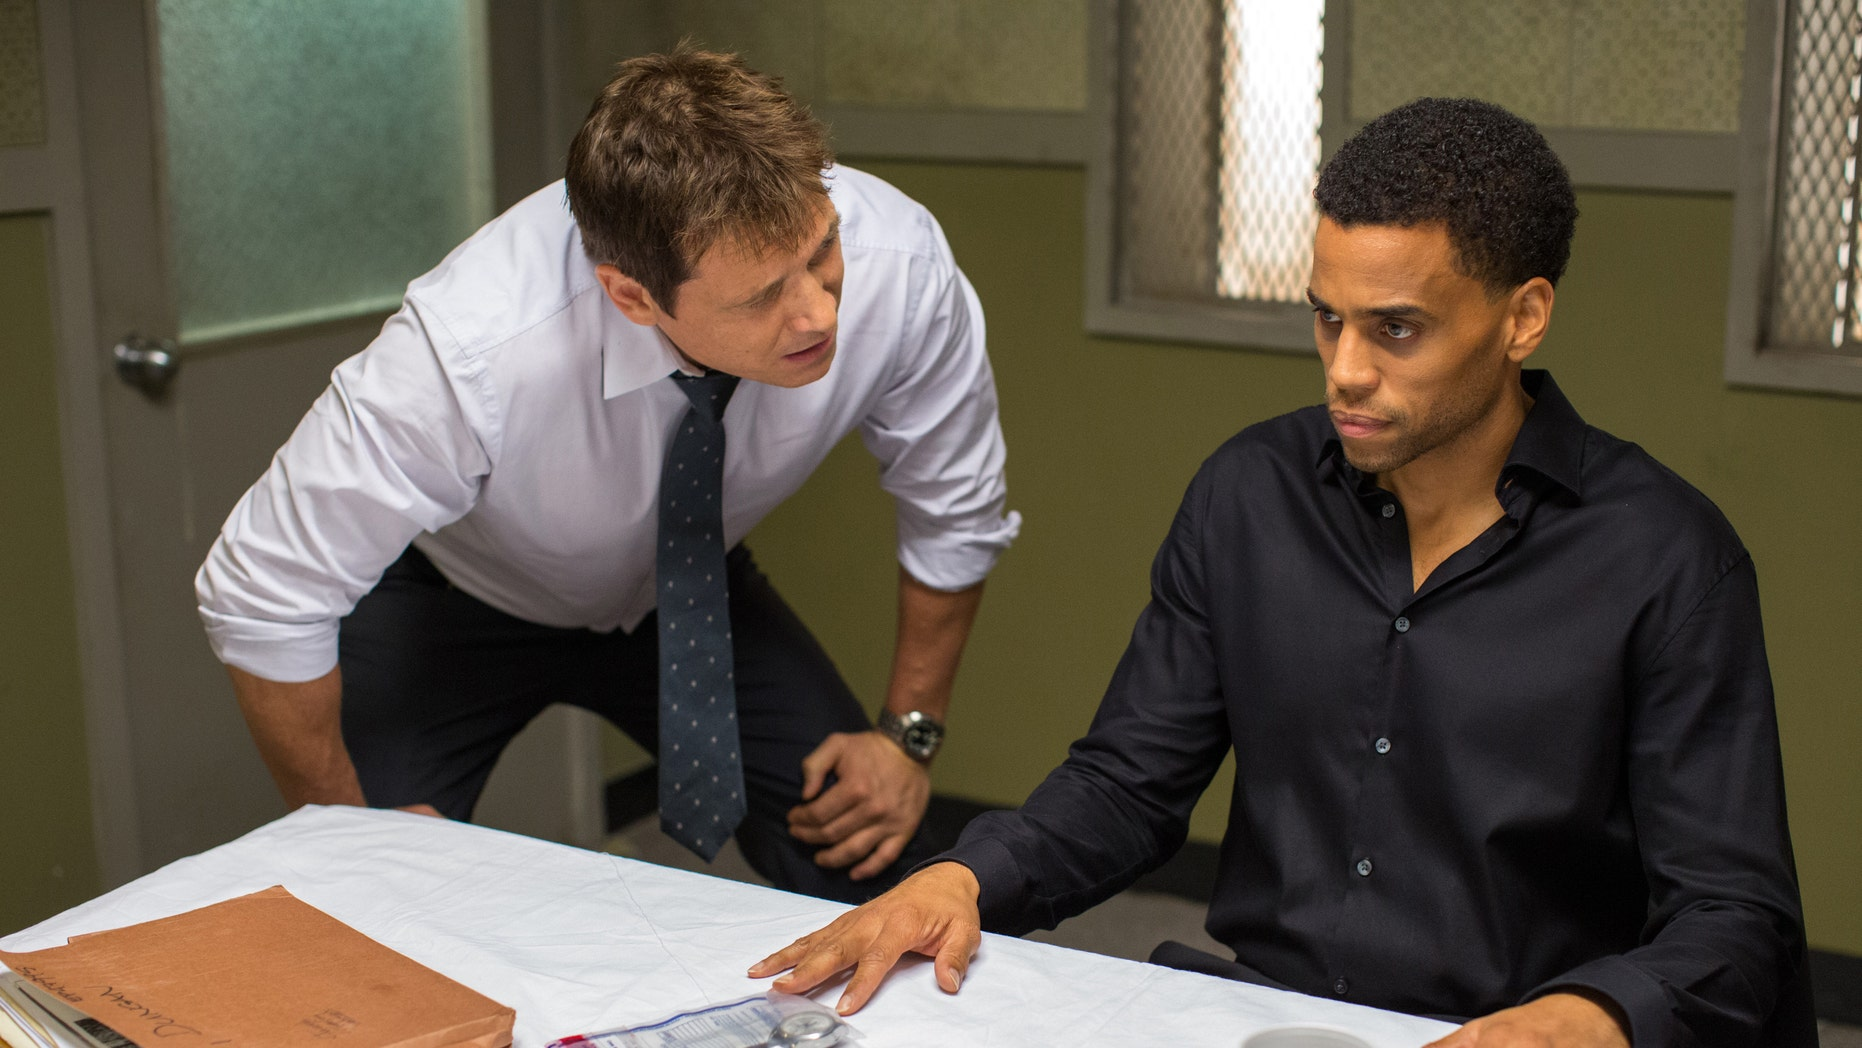 """Holt McCallany, left, as Detective Hansen, interogates Michael Ealy as Carter in """"The Perfect Guy."""""""